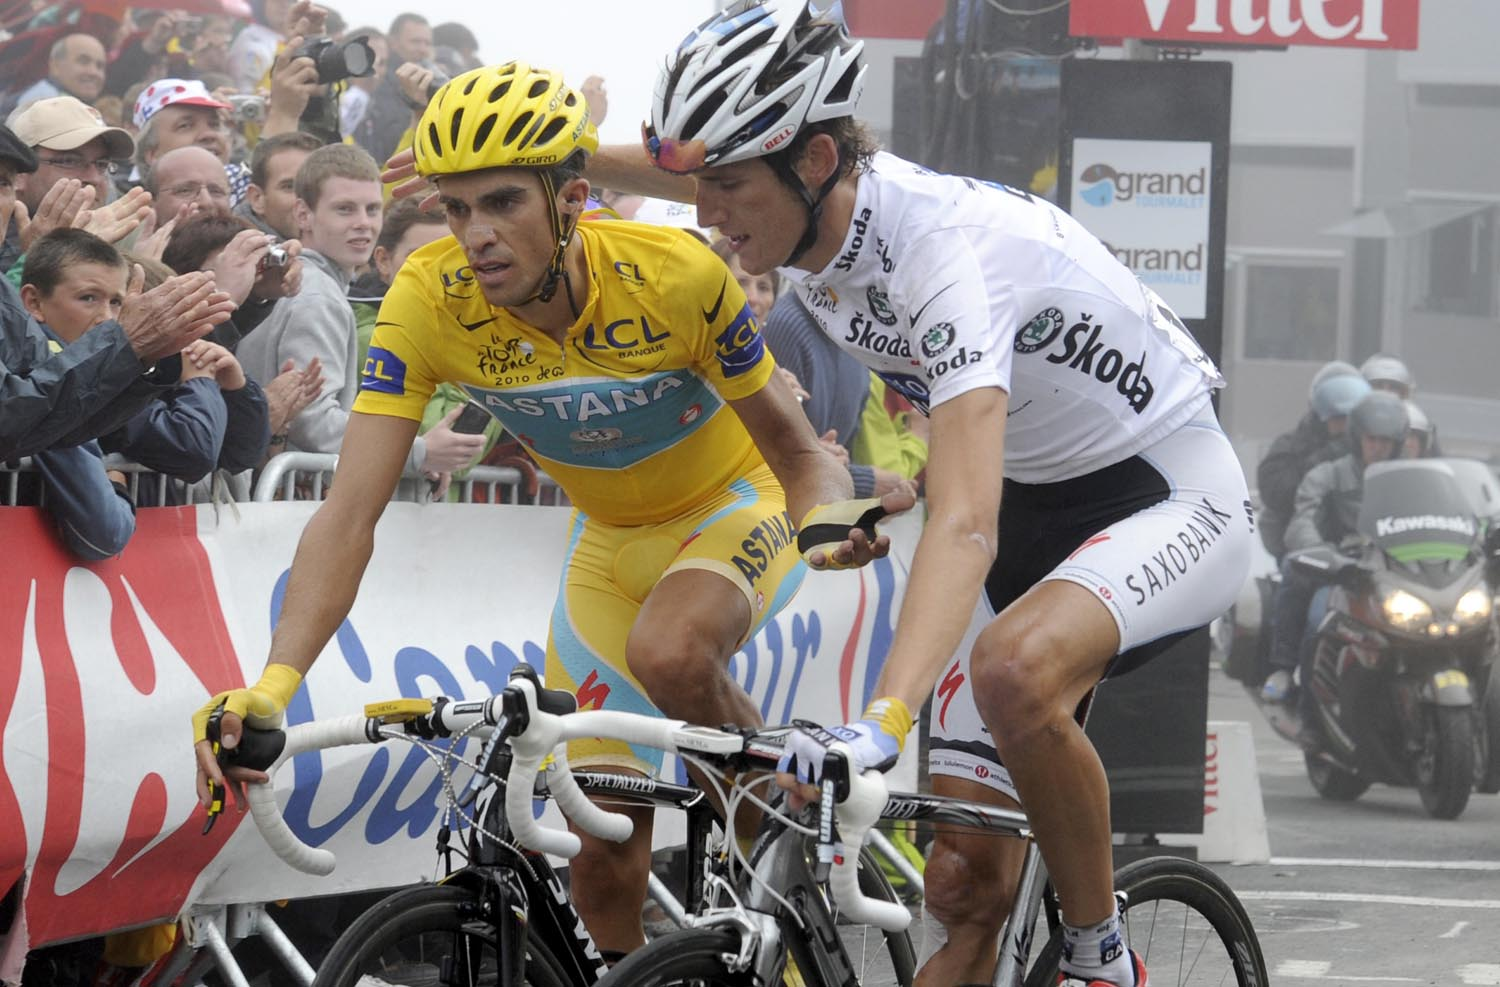 Andy Schleck and Alberto Contador, Tour de France 2010, stage 17